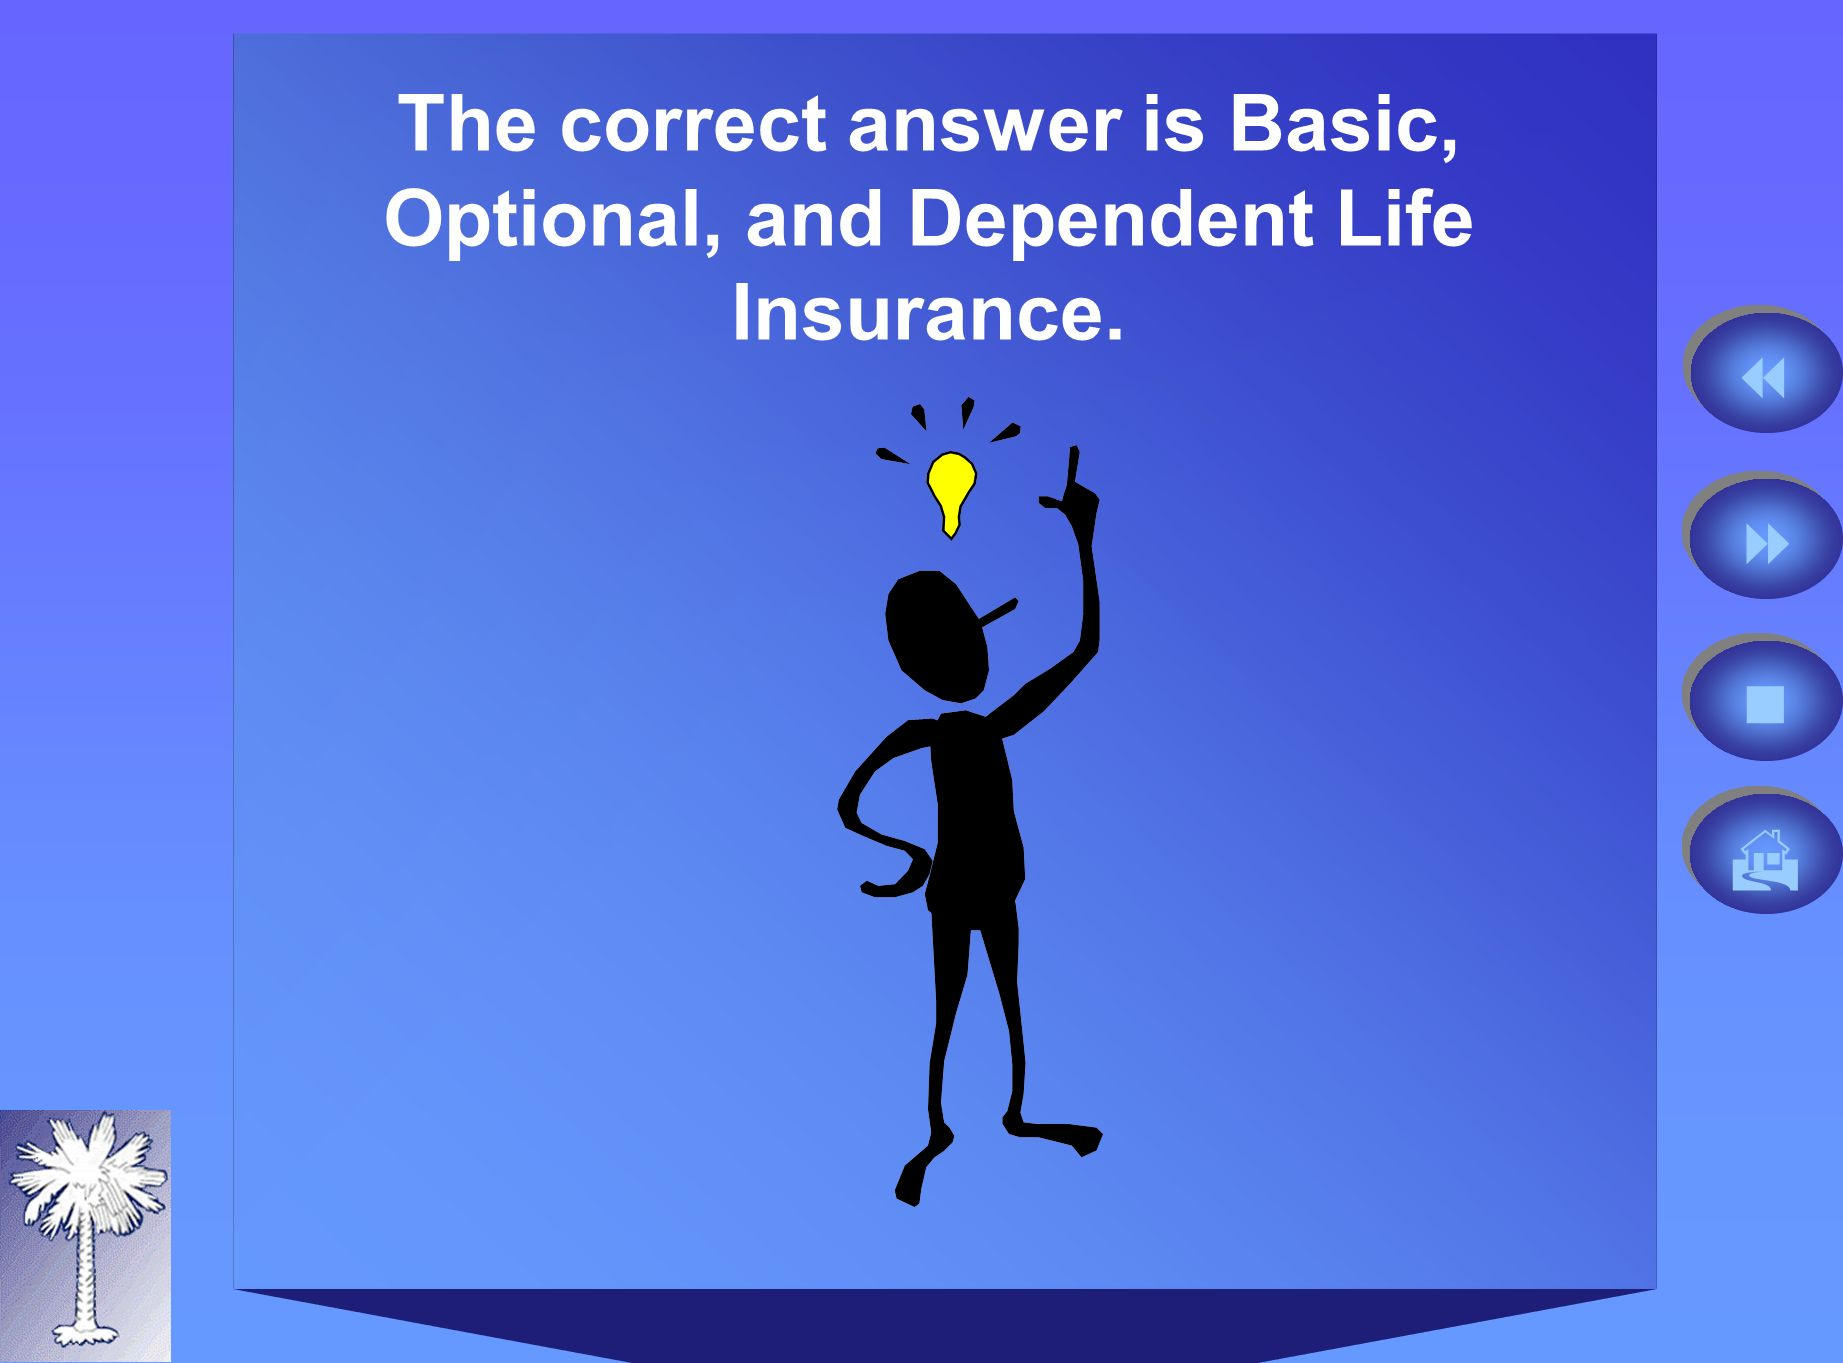 The correct answer is Basic, Optional, and Dependent Life Insurance.